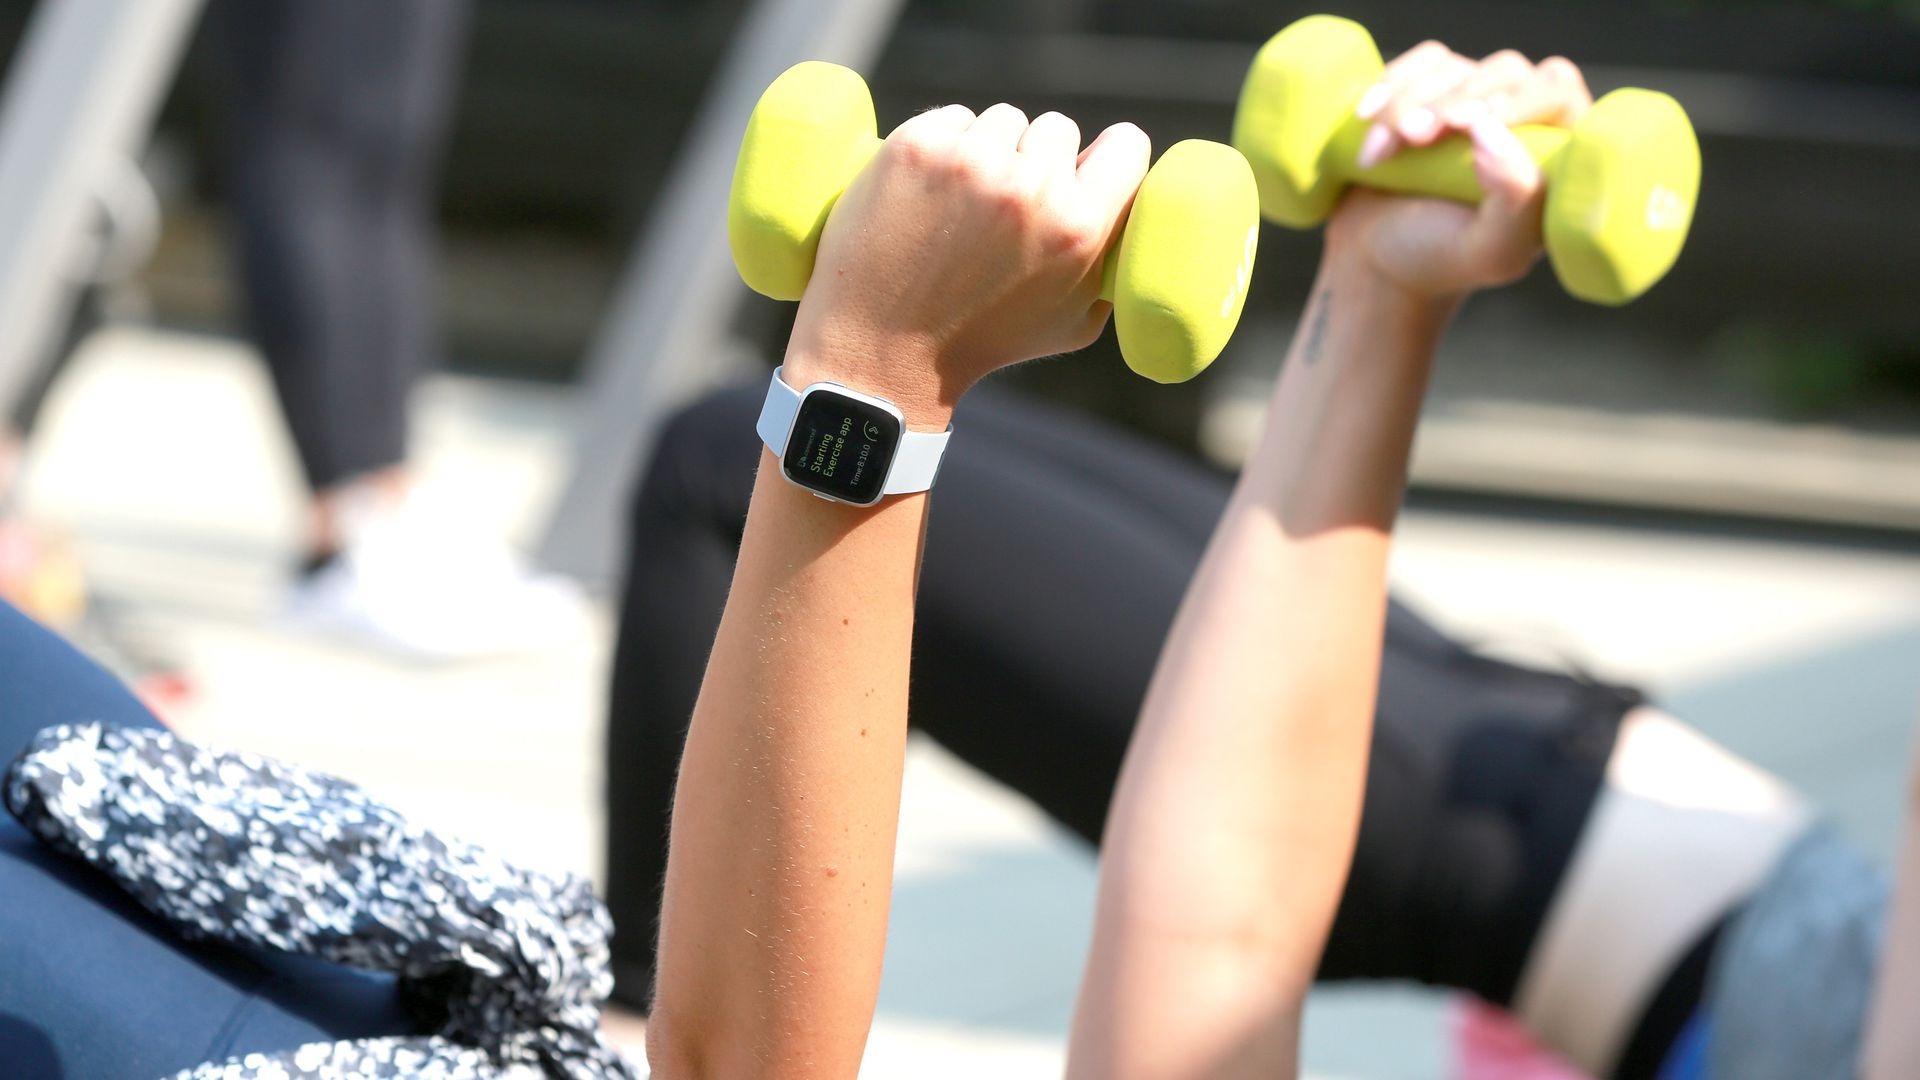 people holding dumbbells as they work out with a Fitbit fitness tracker